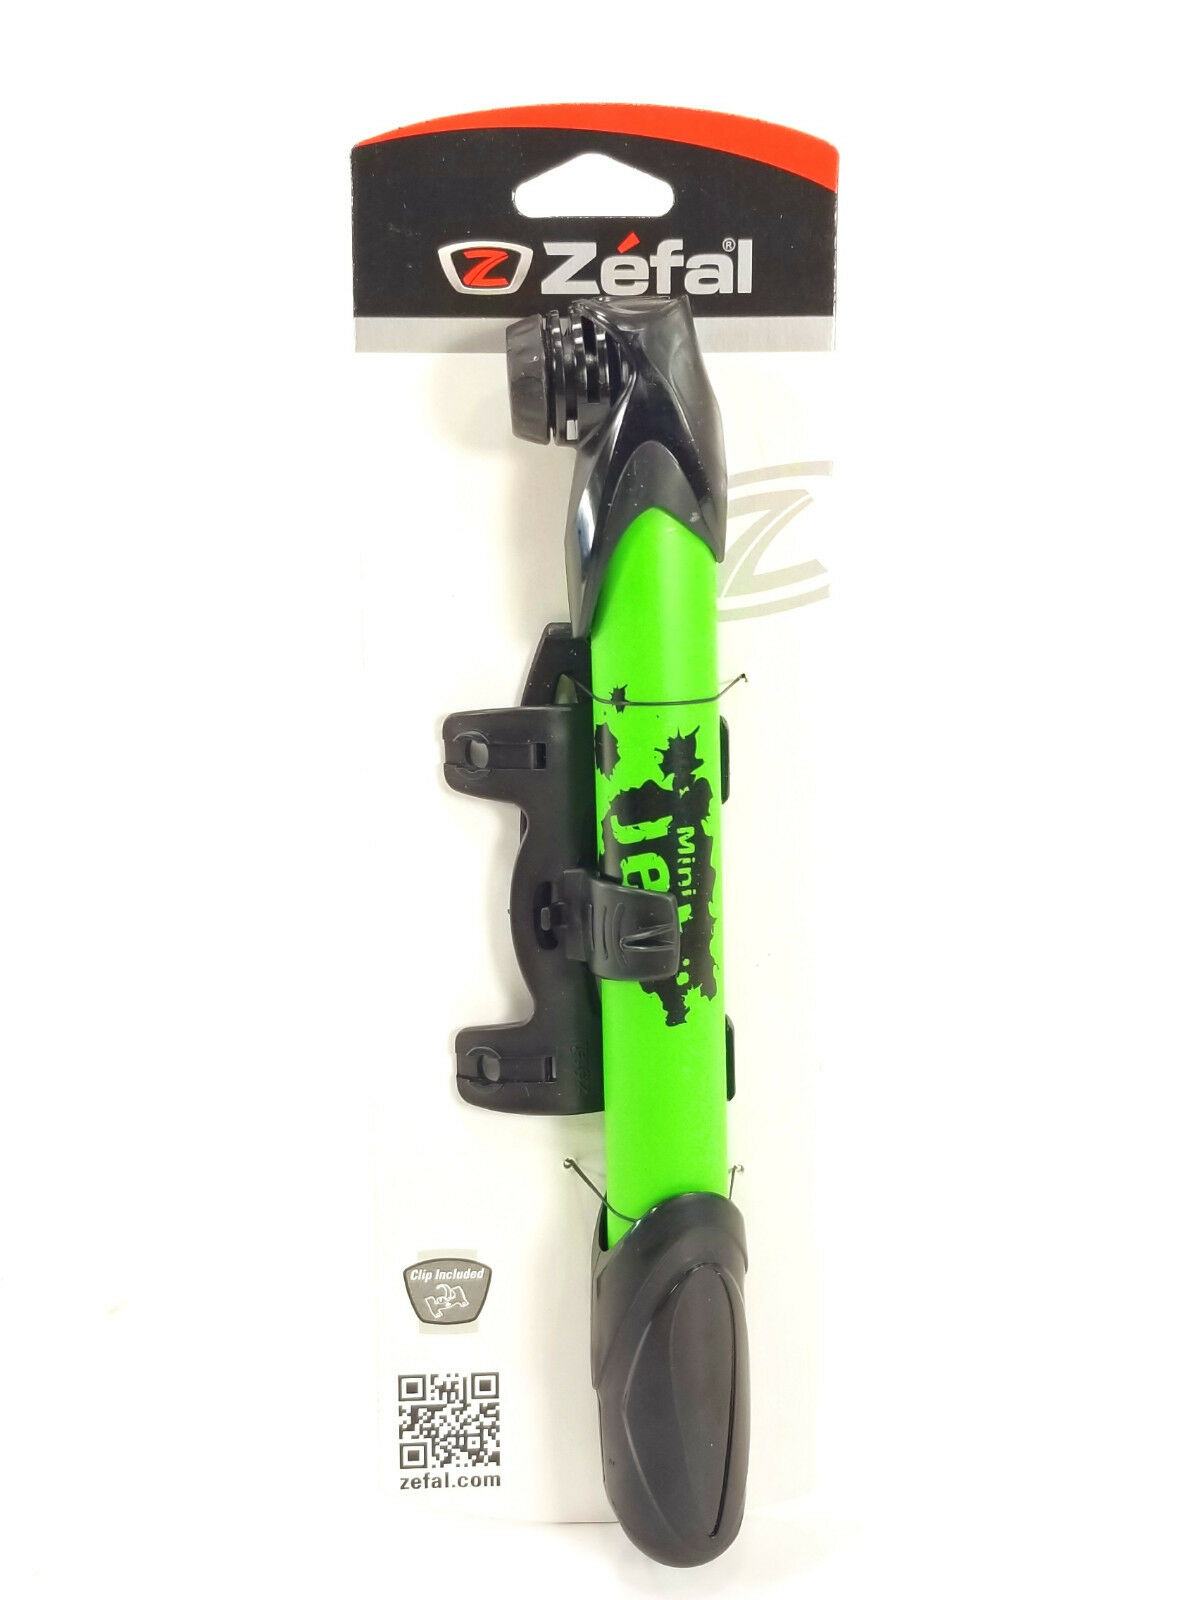 ZEFAL MOUNTAIN BIKE Bicycle Mini Frame Pump, Green - $9.82 | PicClick